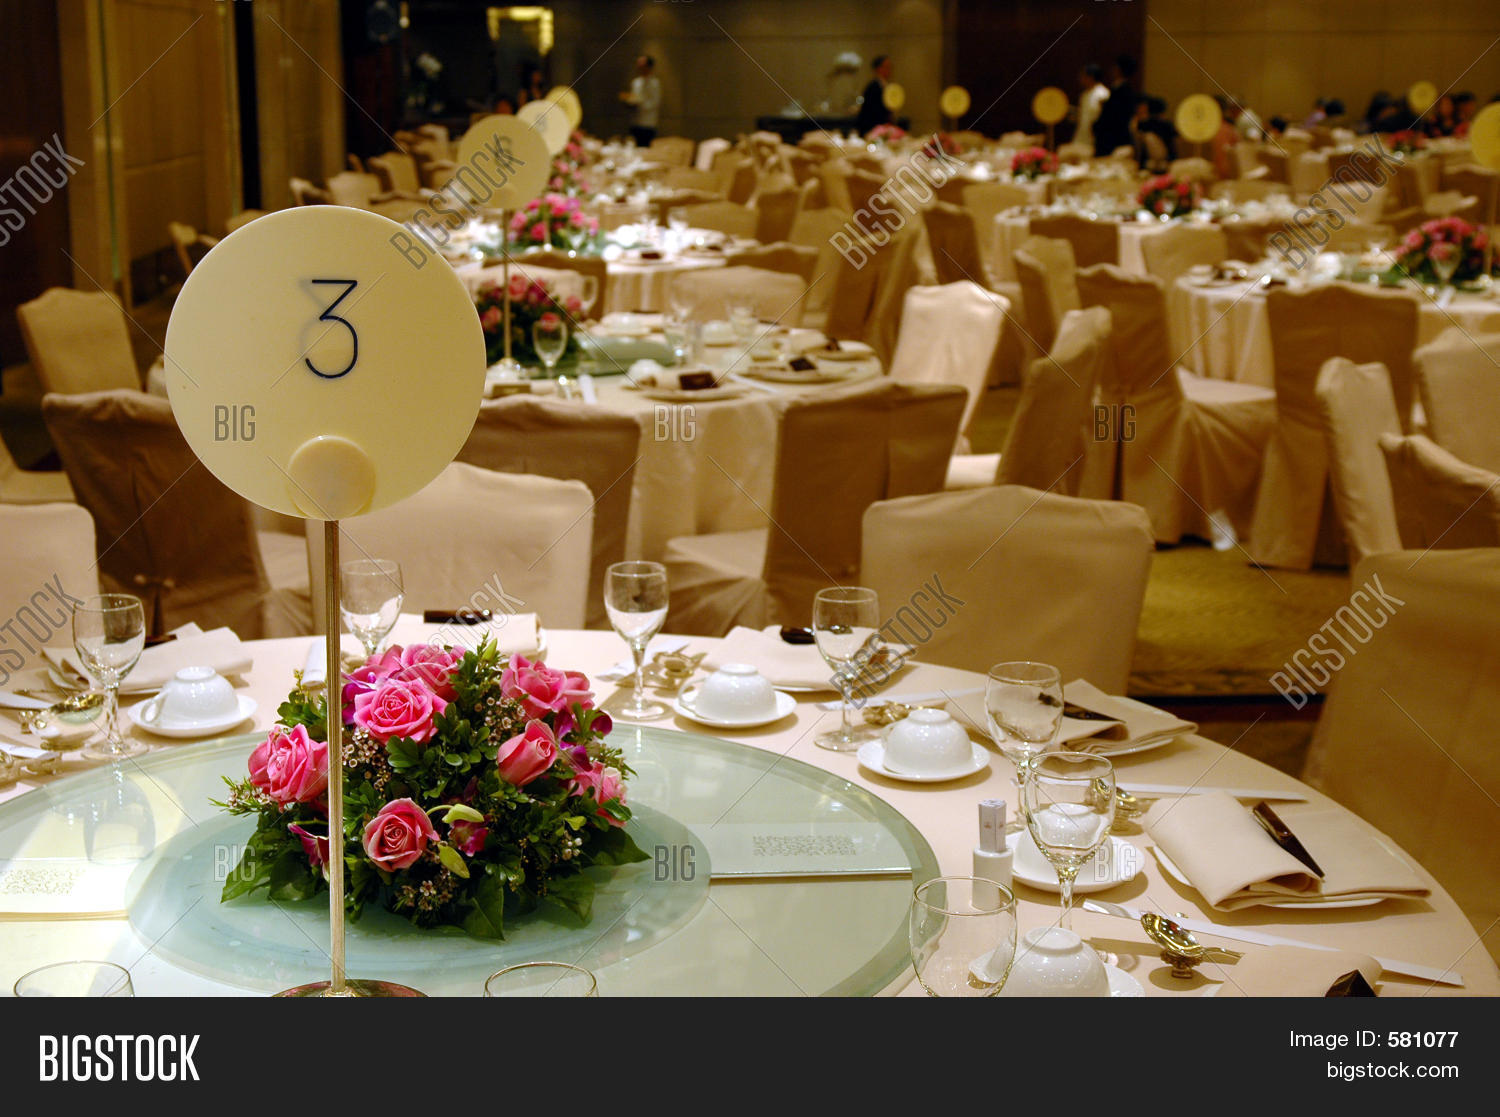 Chinese Wedding Banquet Table Setting